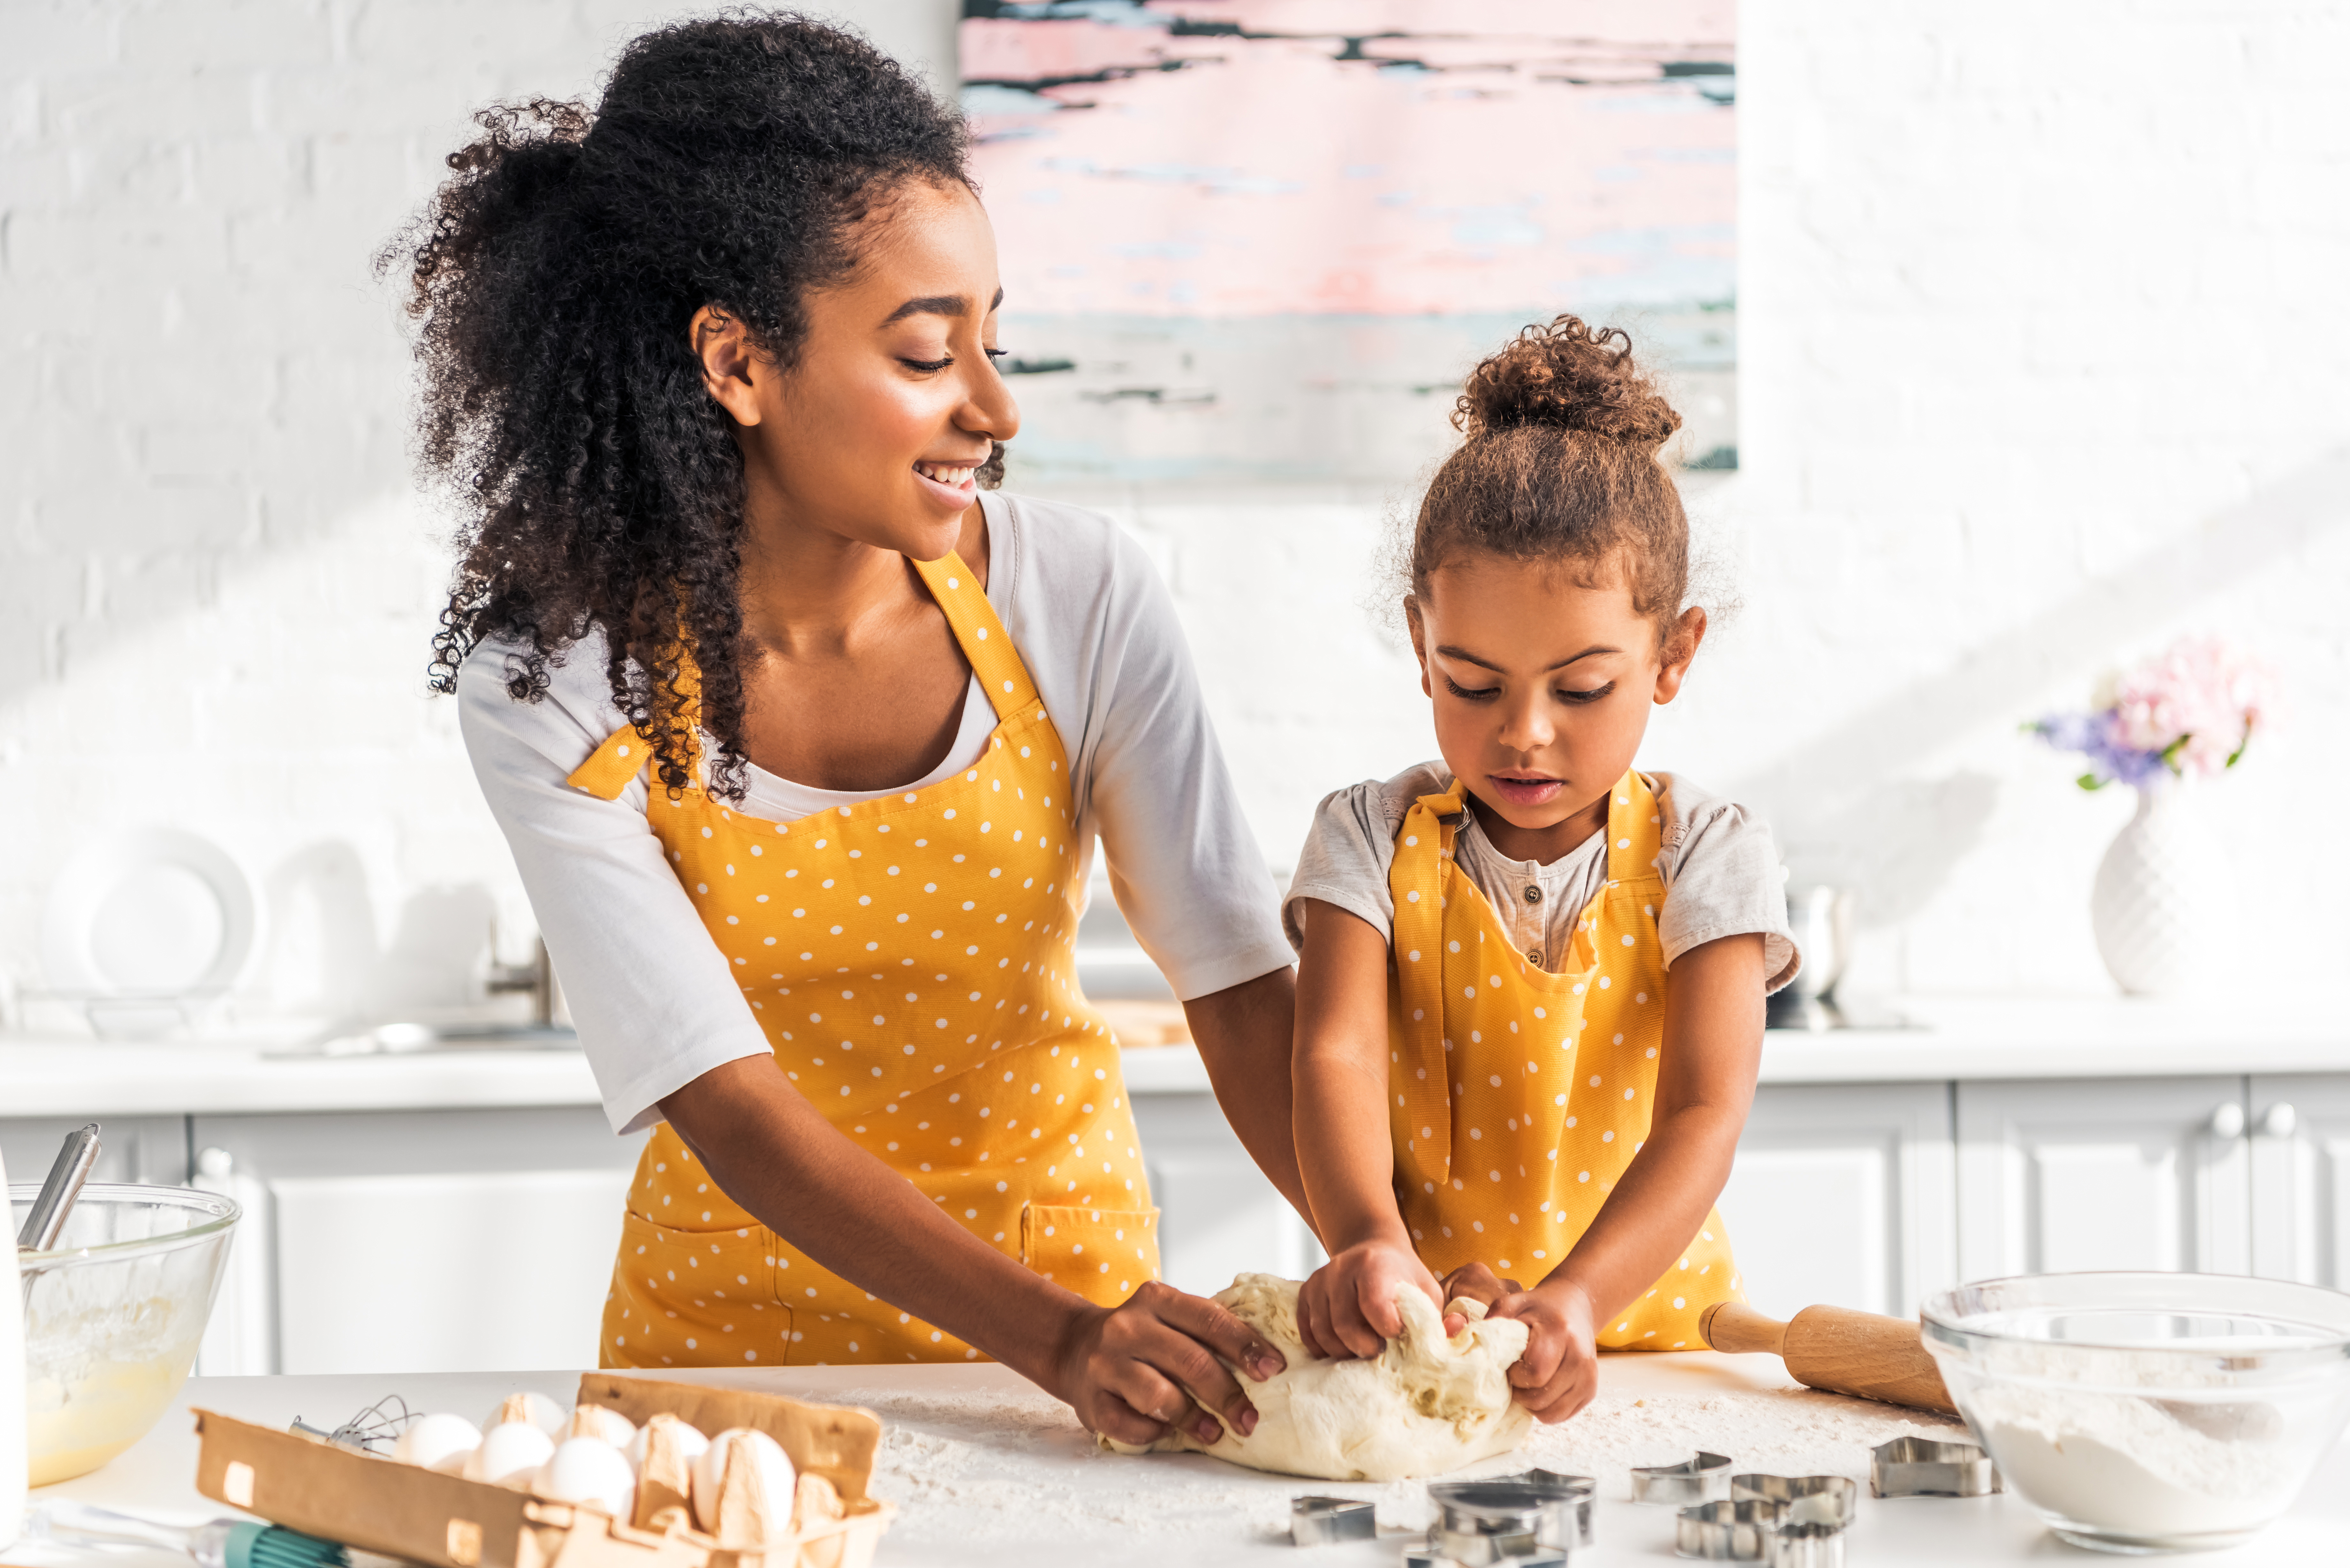 mother_and_daughter_kneading_dough_in_kitchen